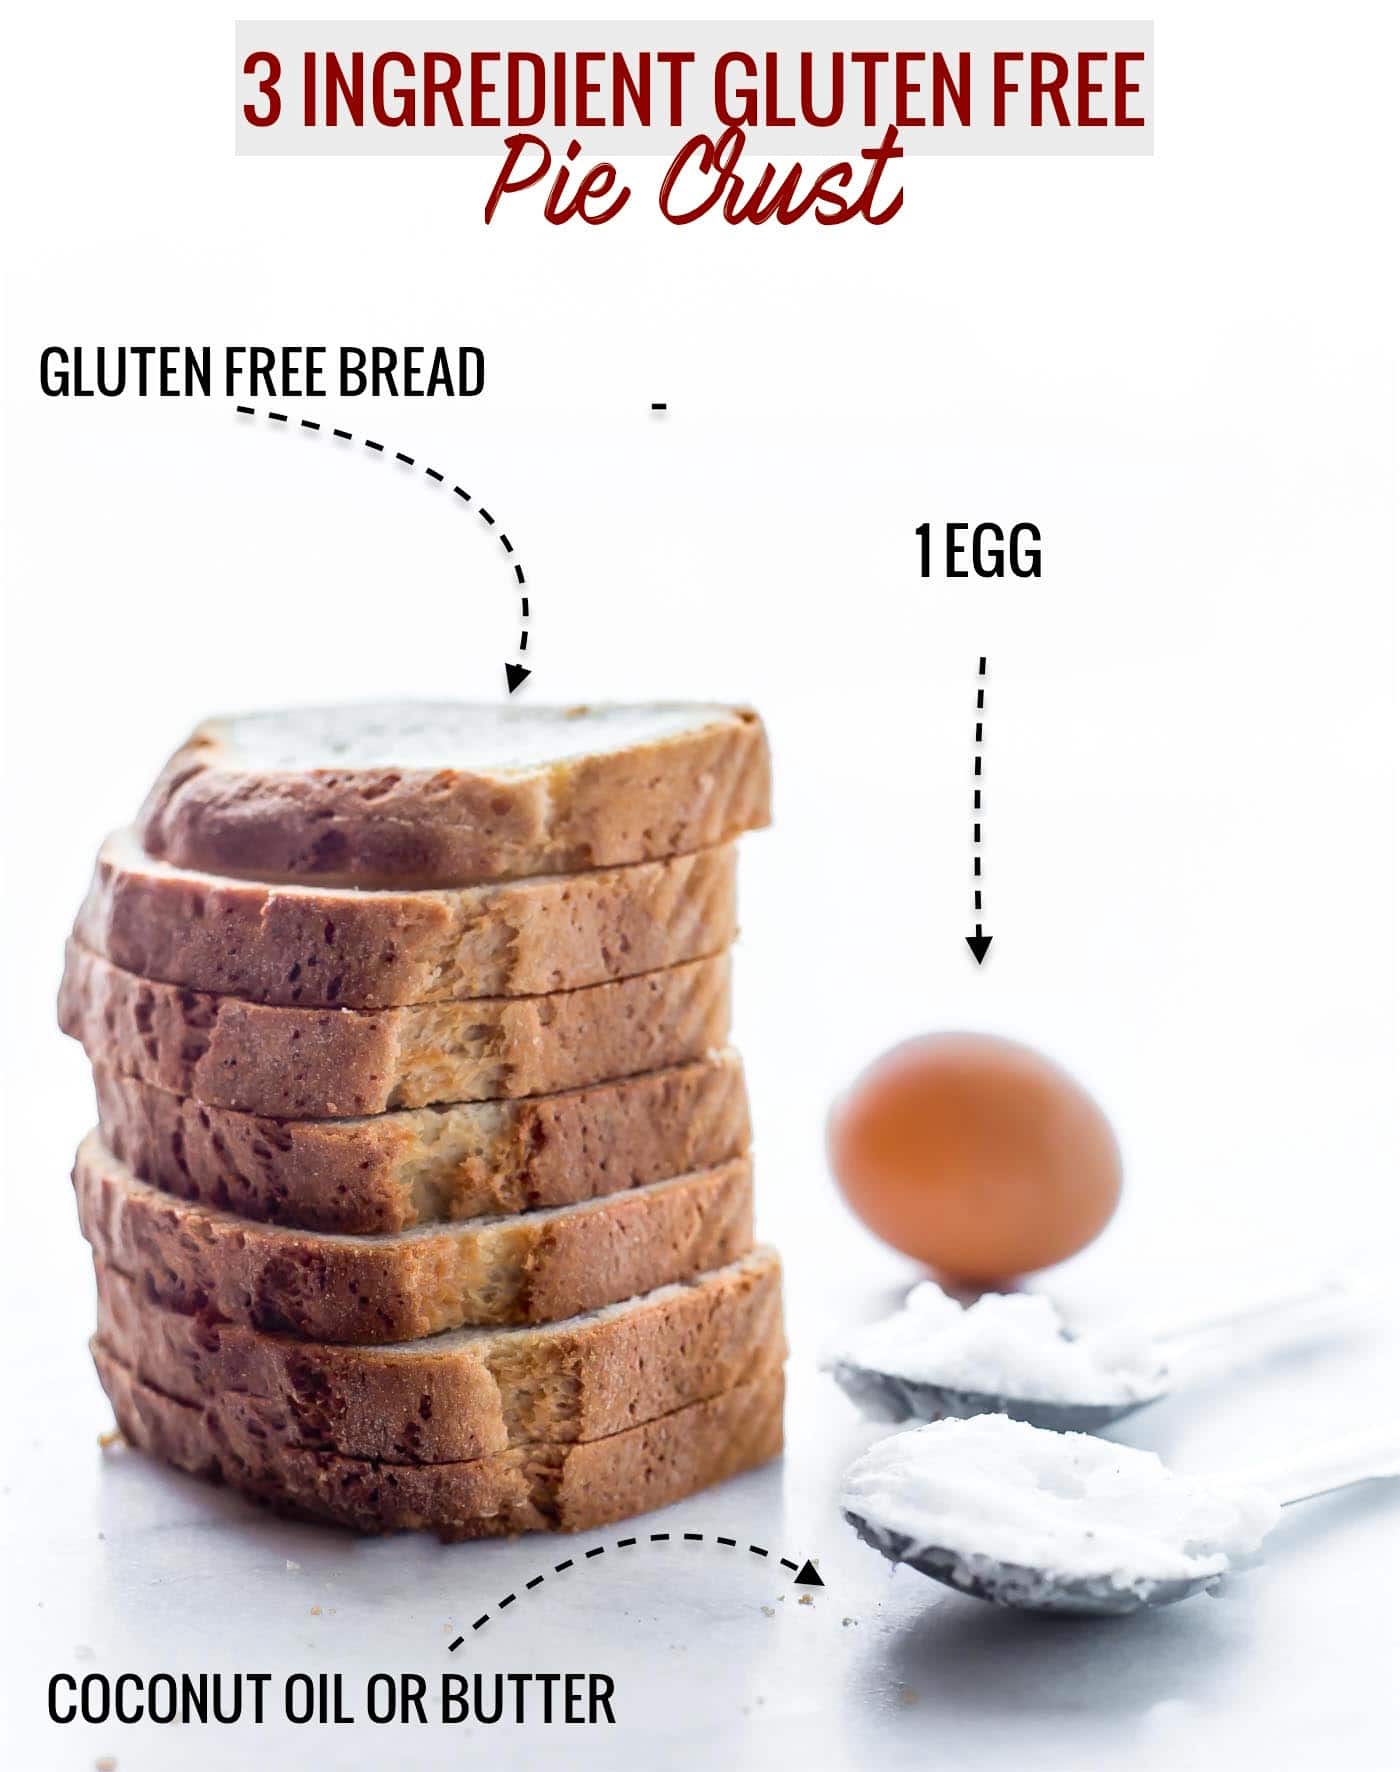 A 3ingredient gluten free pie crust recipe that's easy to make and a dairy free. All you need are 3 healthy ingredients to mix the dough. A multipurpose gluten free pie crust that's great for a quick meal, dessert, or baking dish. This recipe has become a staple in our house for easy gluten free baking! Vegan Option @udisglutenfree